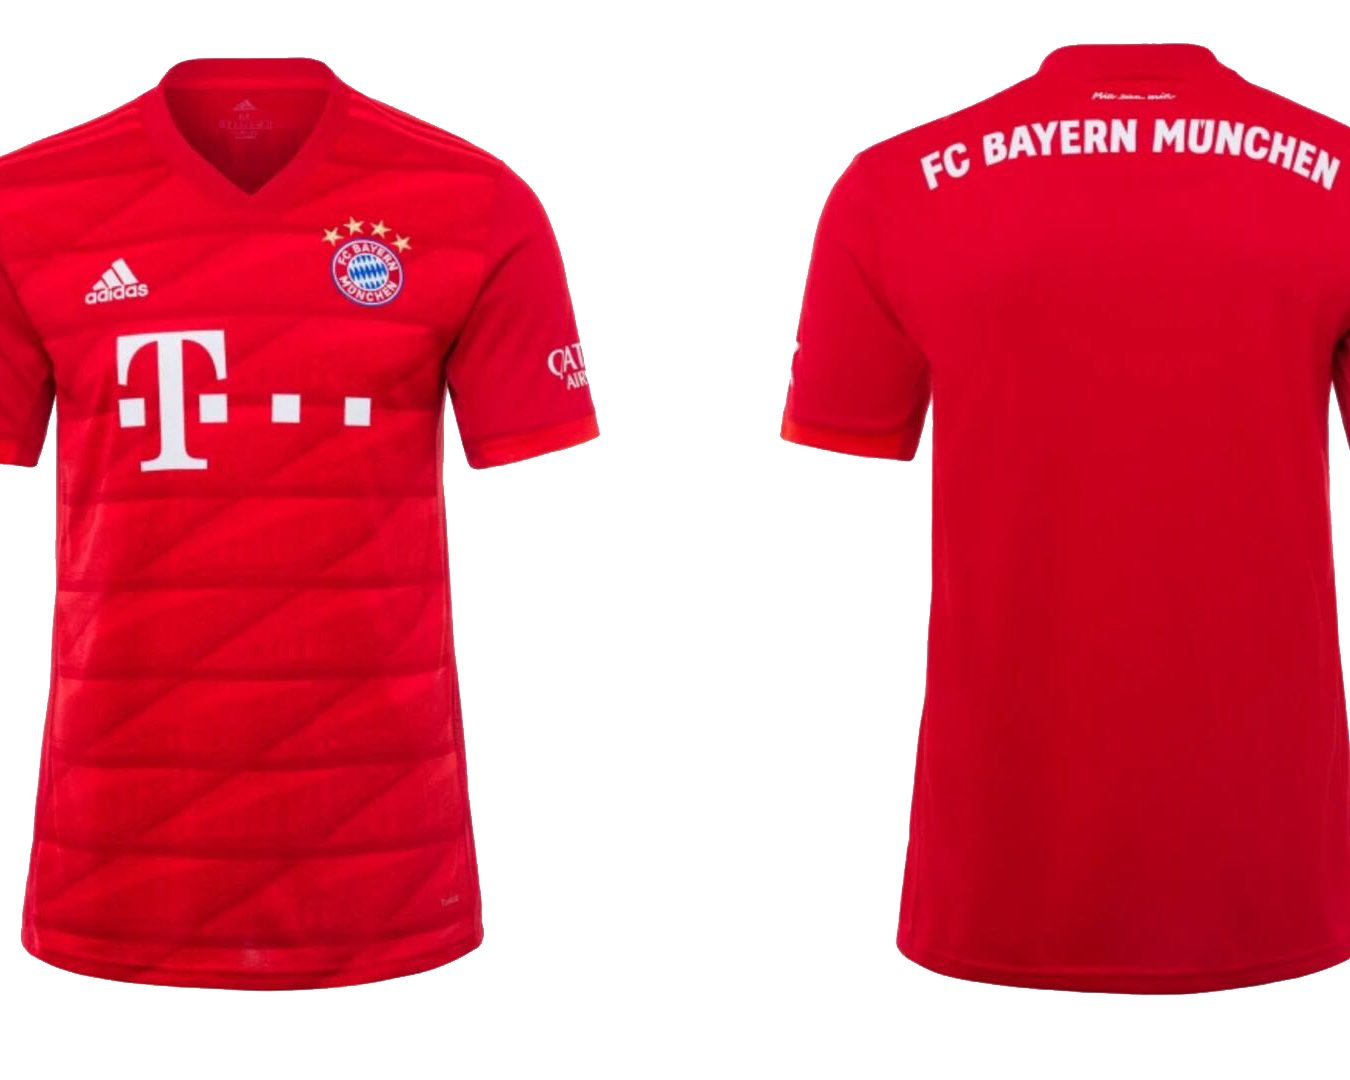 Bundesliga Bayern Munich Release New Jersey For 2019 20